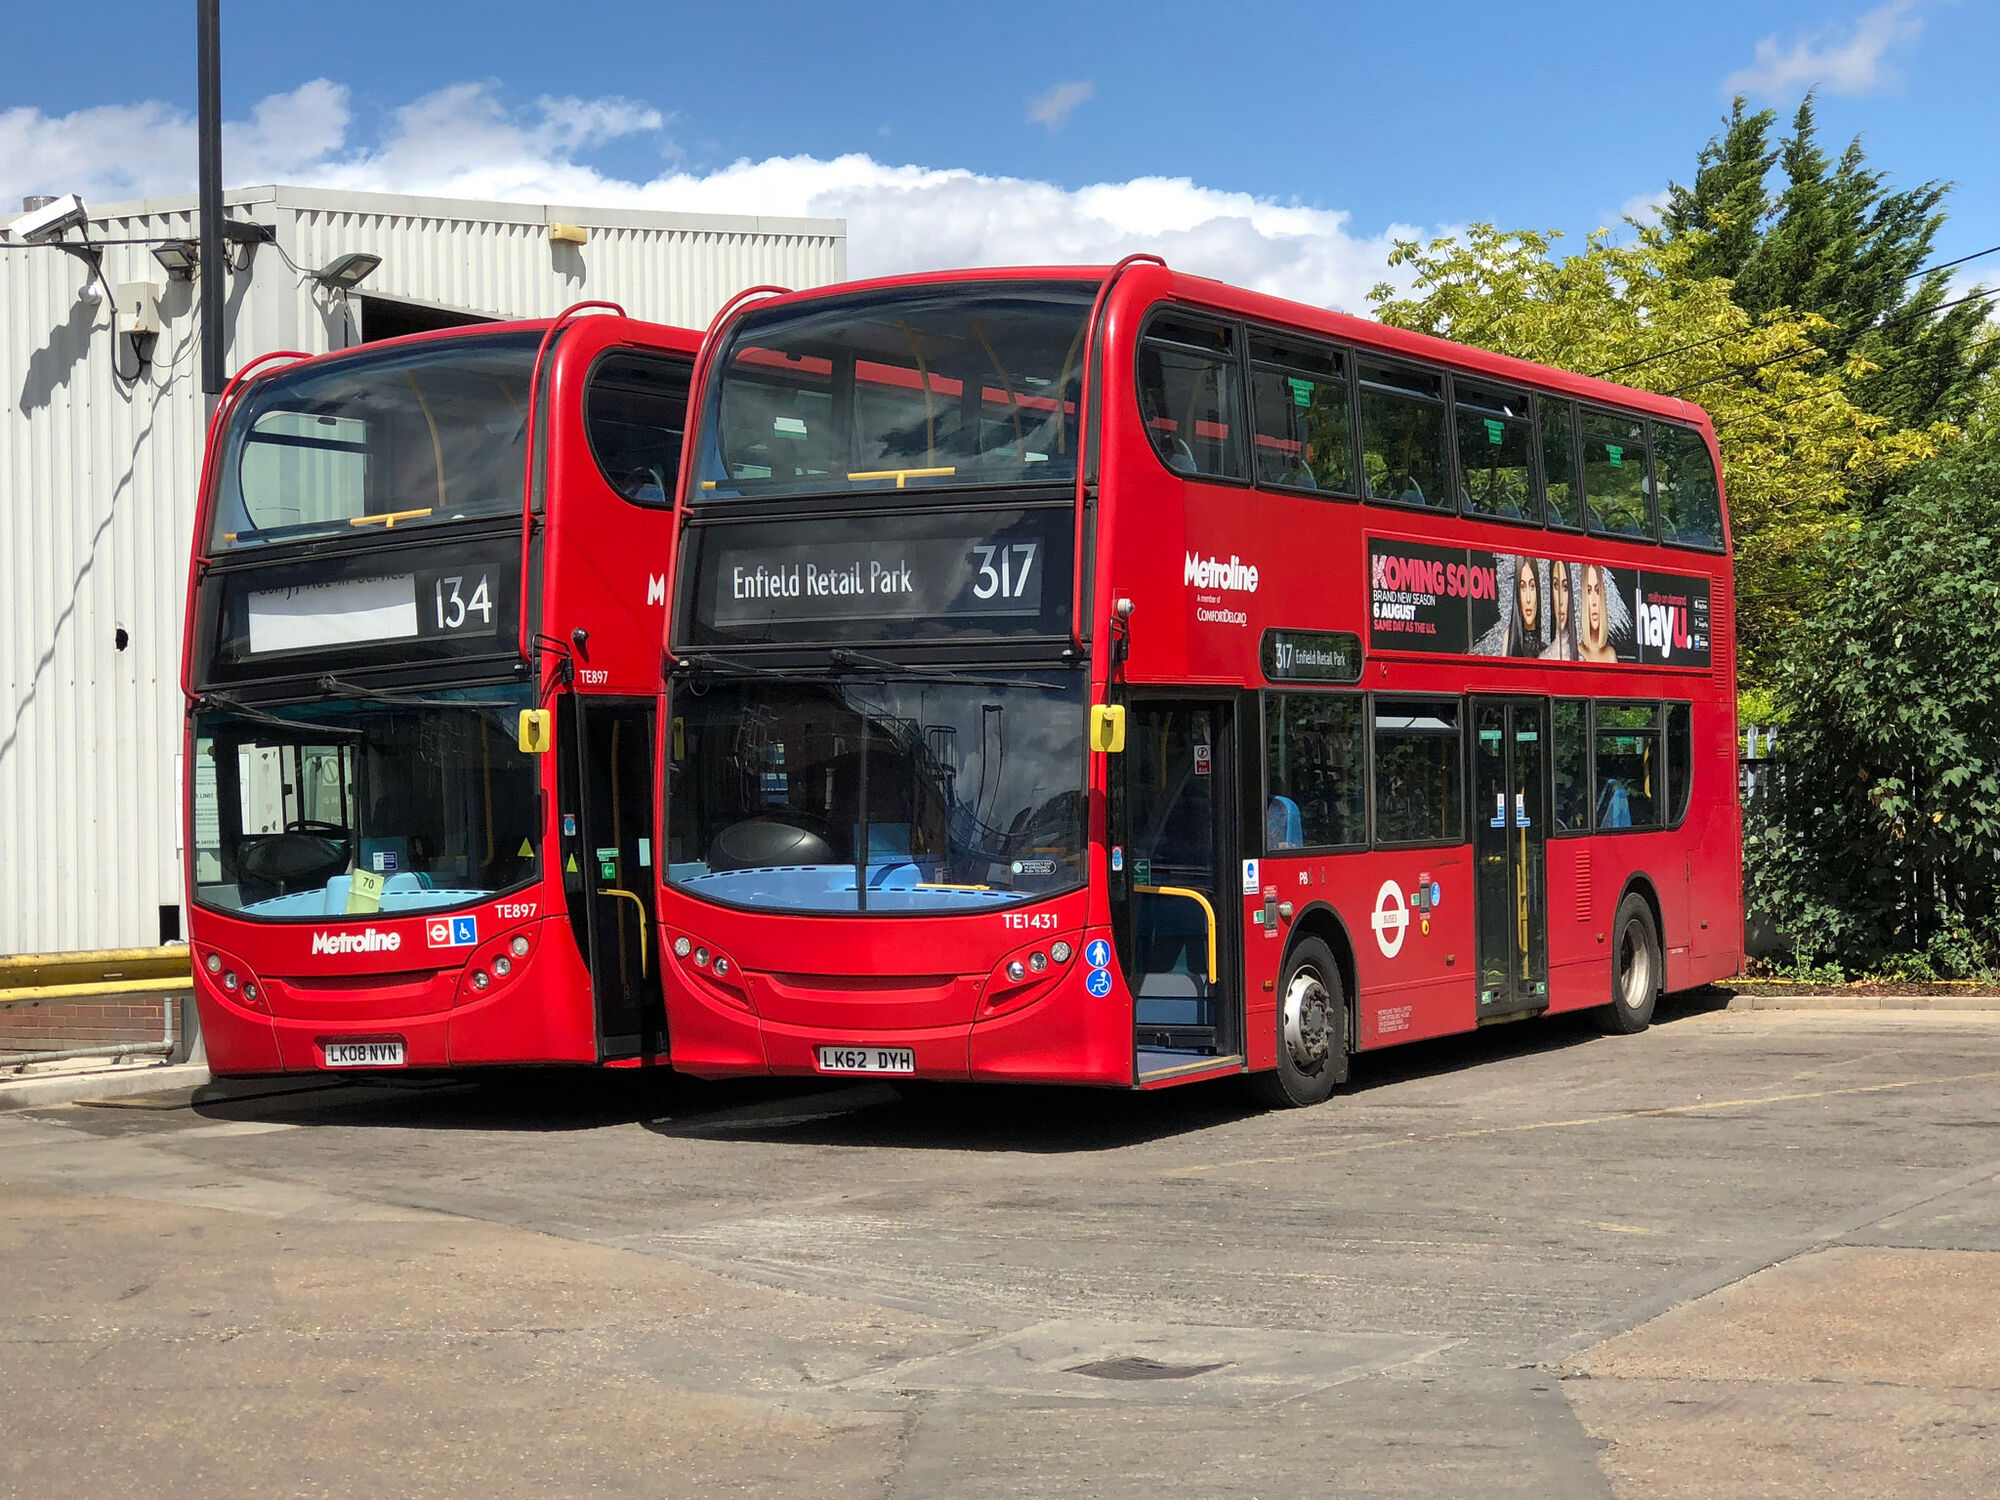 london buses route 317 | bus routes in london wiki | fandom powered